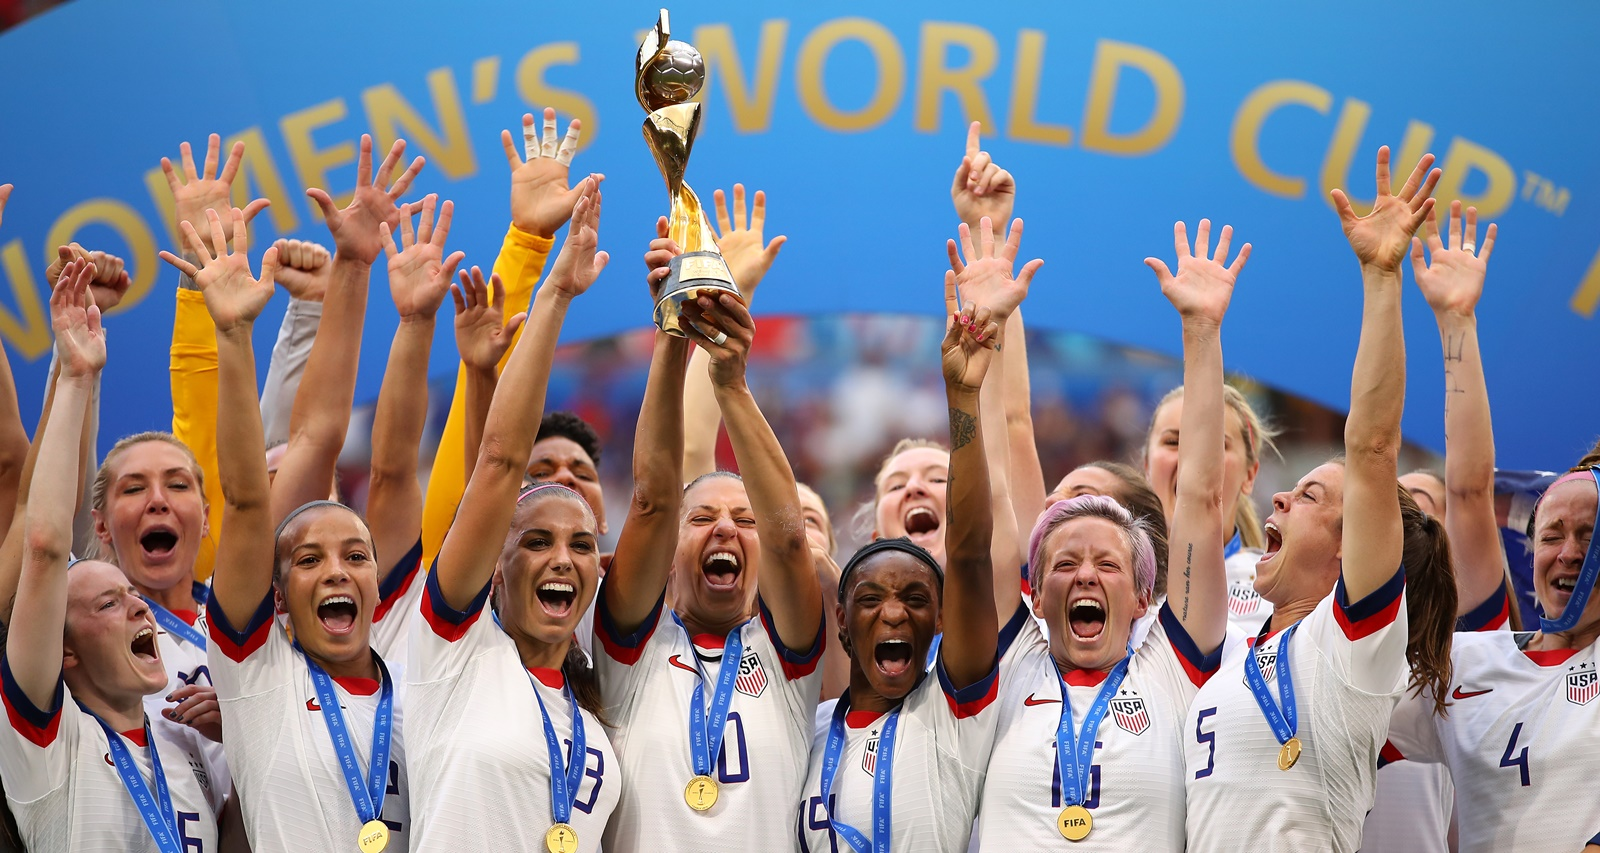 2019 World Cup Winners, U.S. Women's Soccer Team Net Worth List